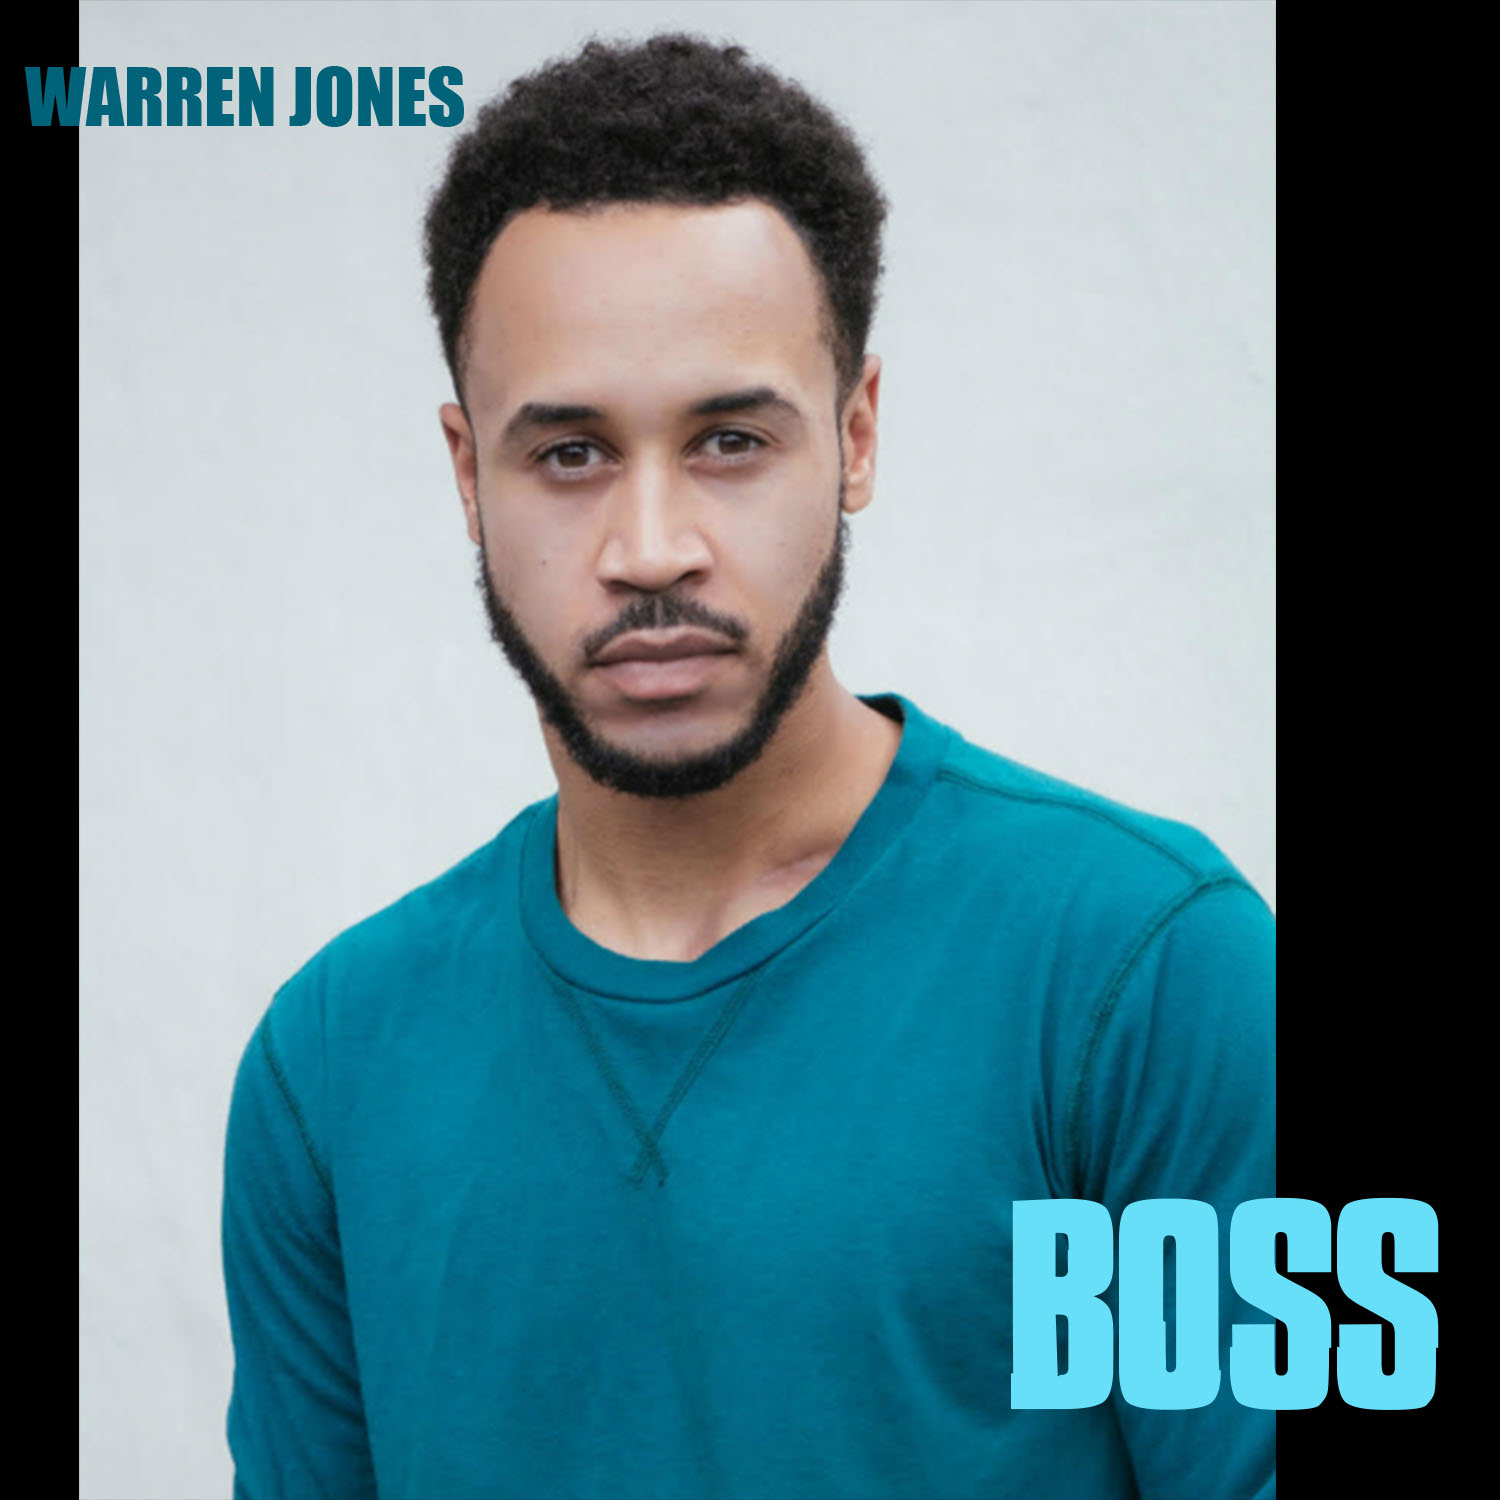 Warren Jones stars as YUNG SAGGER - Warren fell into acting about 4 years ago when he moved to Atlanta. He previously studied photography and has found a passion for performing on camera as well. His early success landing speaking roles on tv shows like Homicide Hunter and Fatal Attraction in his first months of acting led him to pursue it more vigorously and study the craft. He has since made appearances in films such as Hidden Figures and commercials like BET's Man Cave, Aetna, Blue Cross and more.@warrenxjones on ig